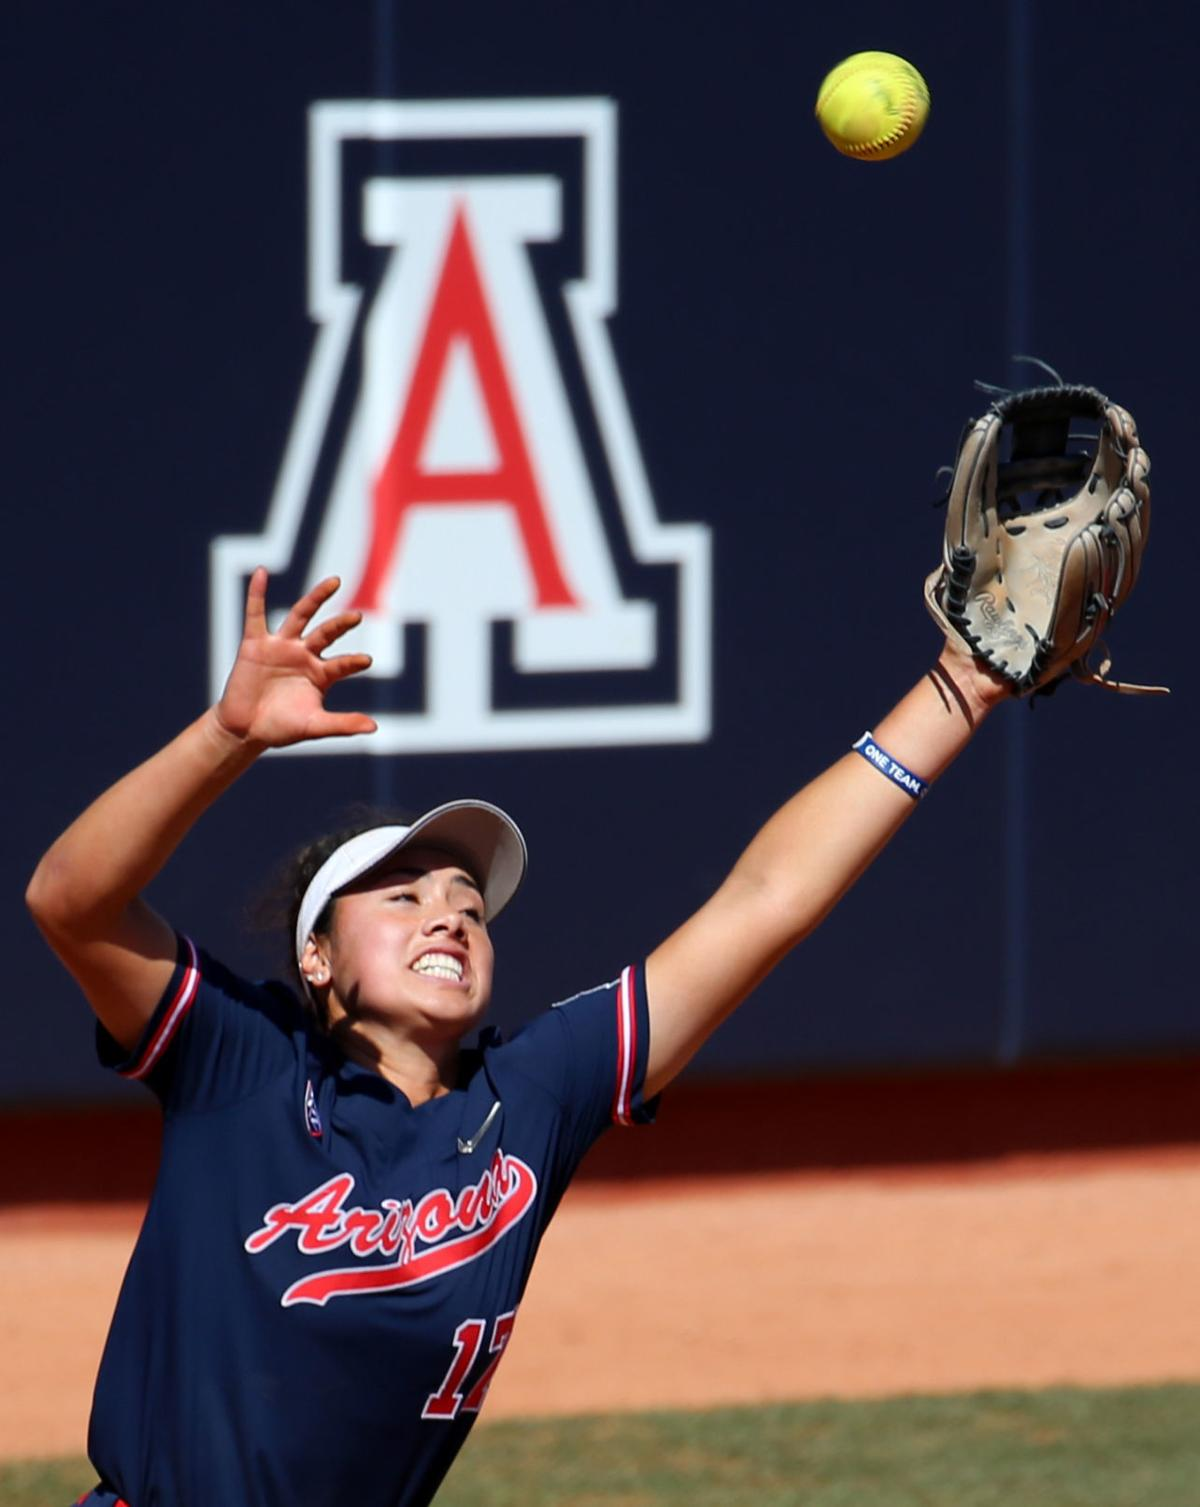 Arizona Wildcats 8, Oregon Ducks 0, Pac-12 softball